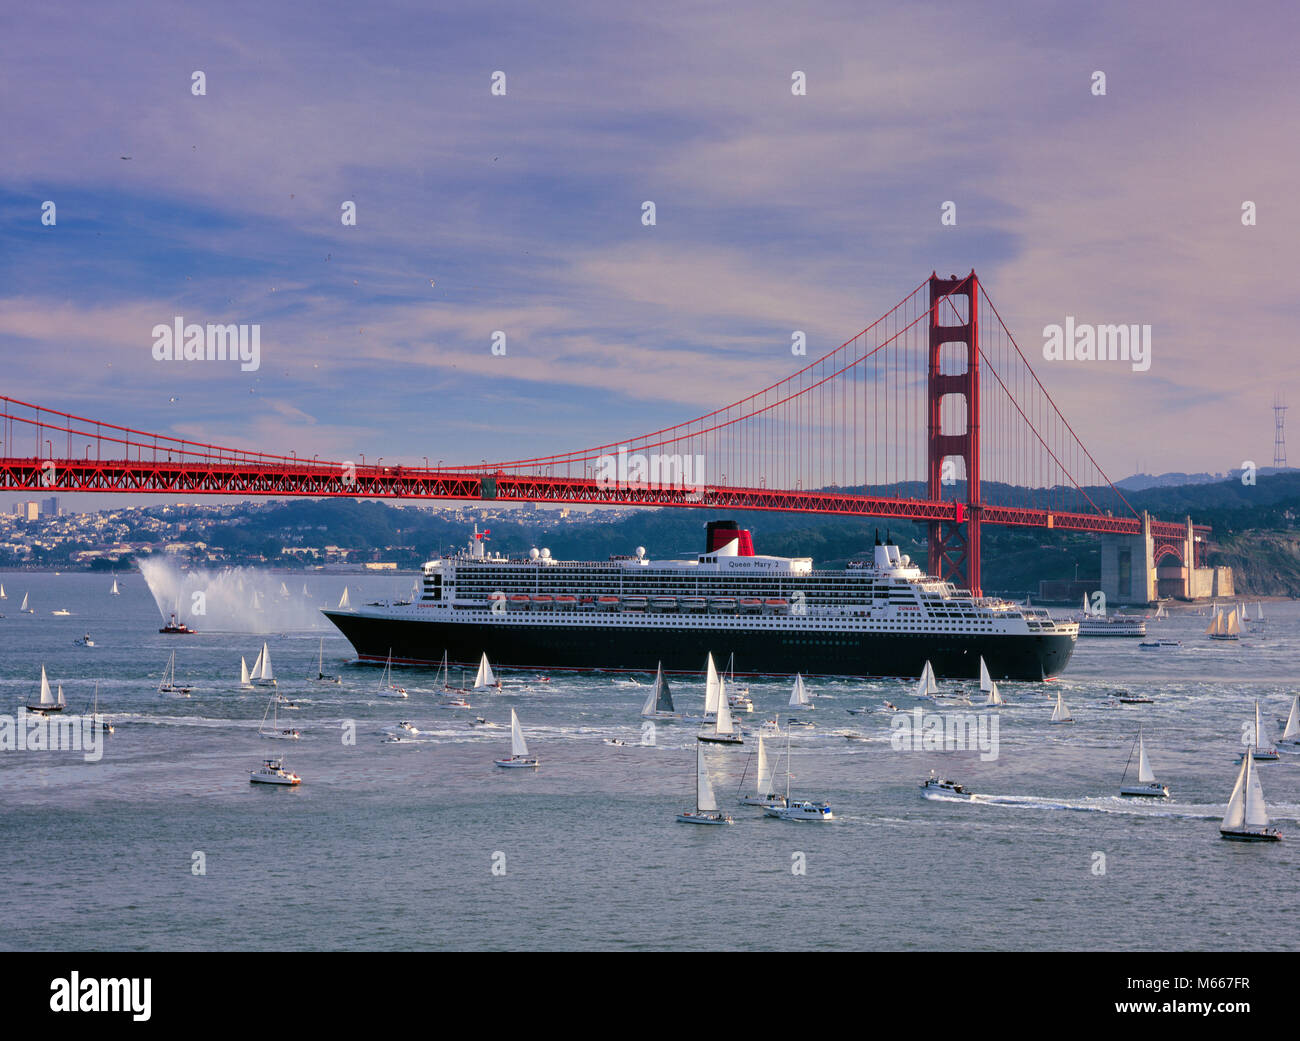 Queen Mary 2, Golden Gate Bridge, San Francisco, California - Stock Image